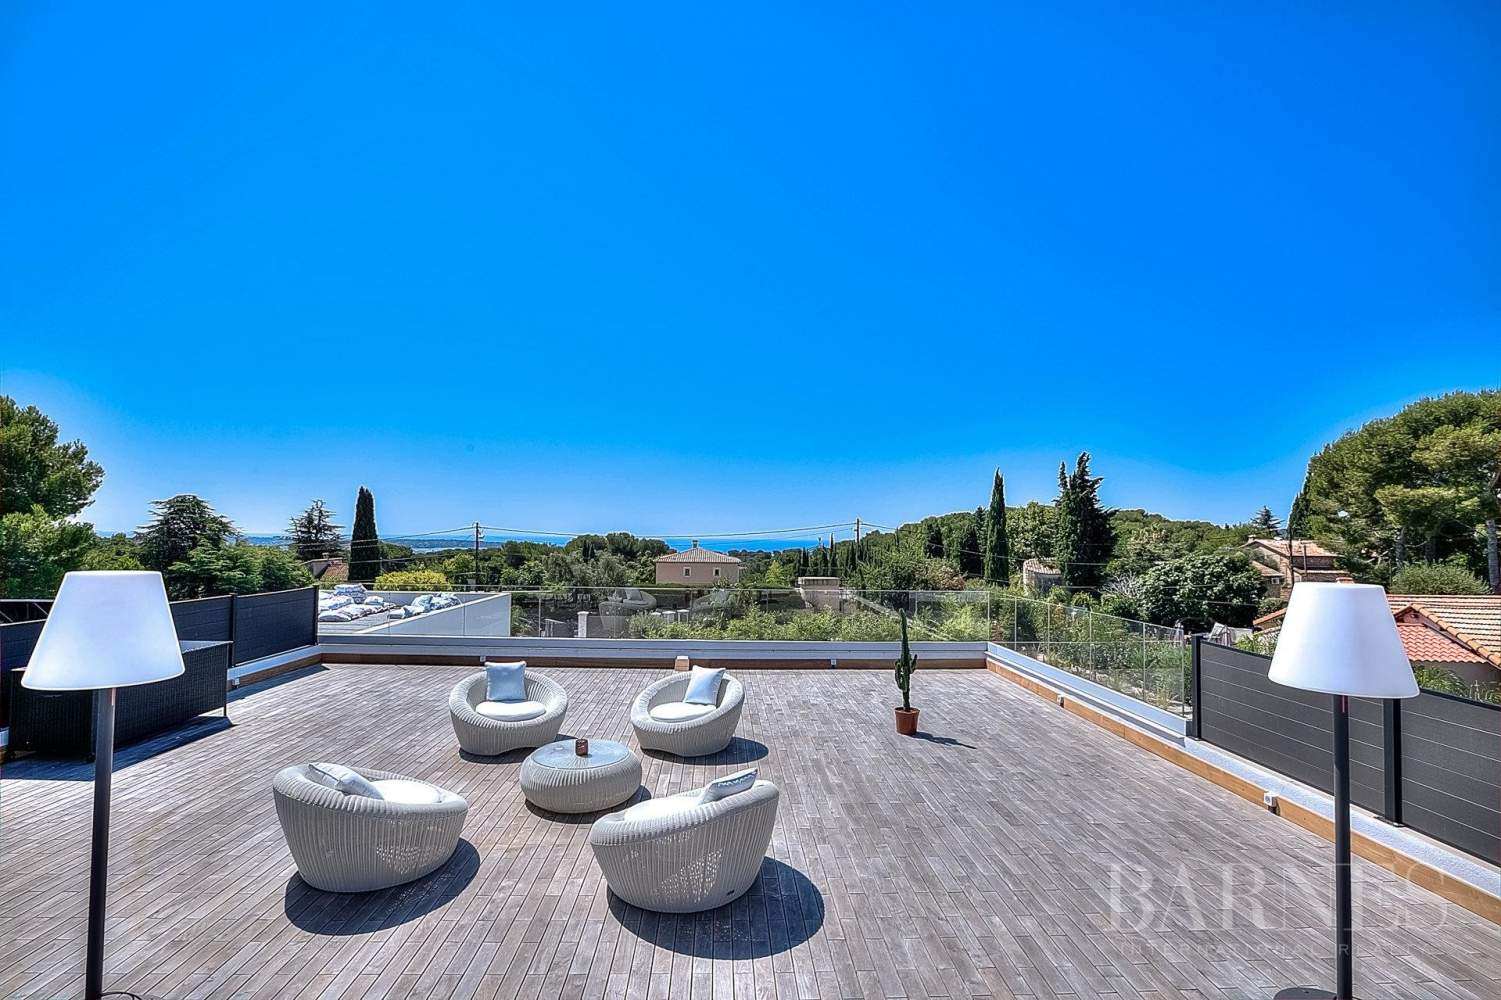 ANTIBES - ROOF TERRACE WITH SEA VIEW - SWIMMING POOL - 4 BEDROOMS picture 17